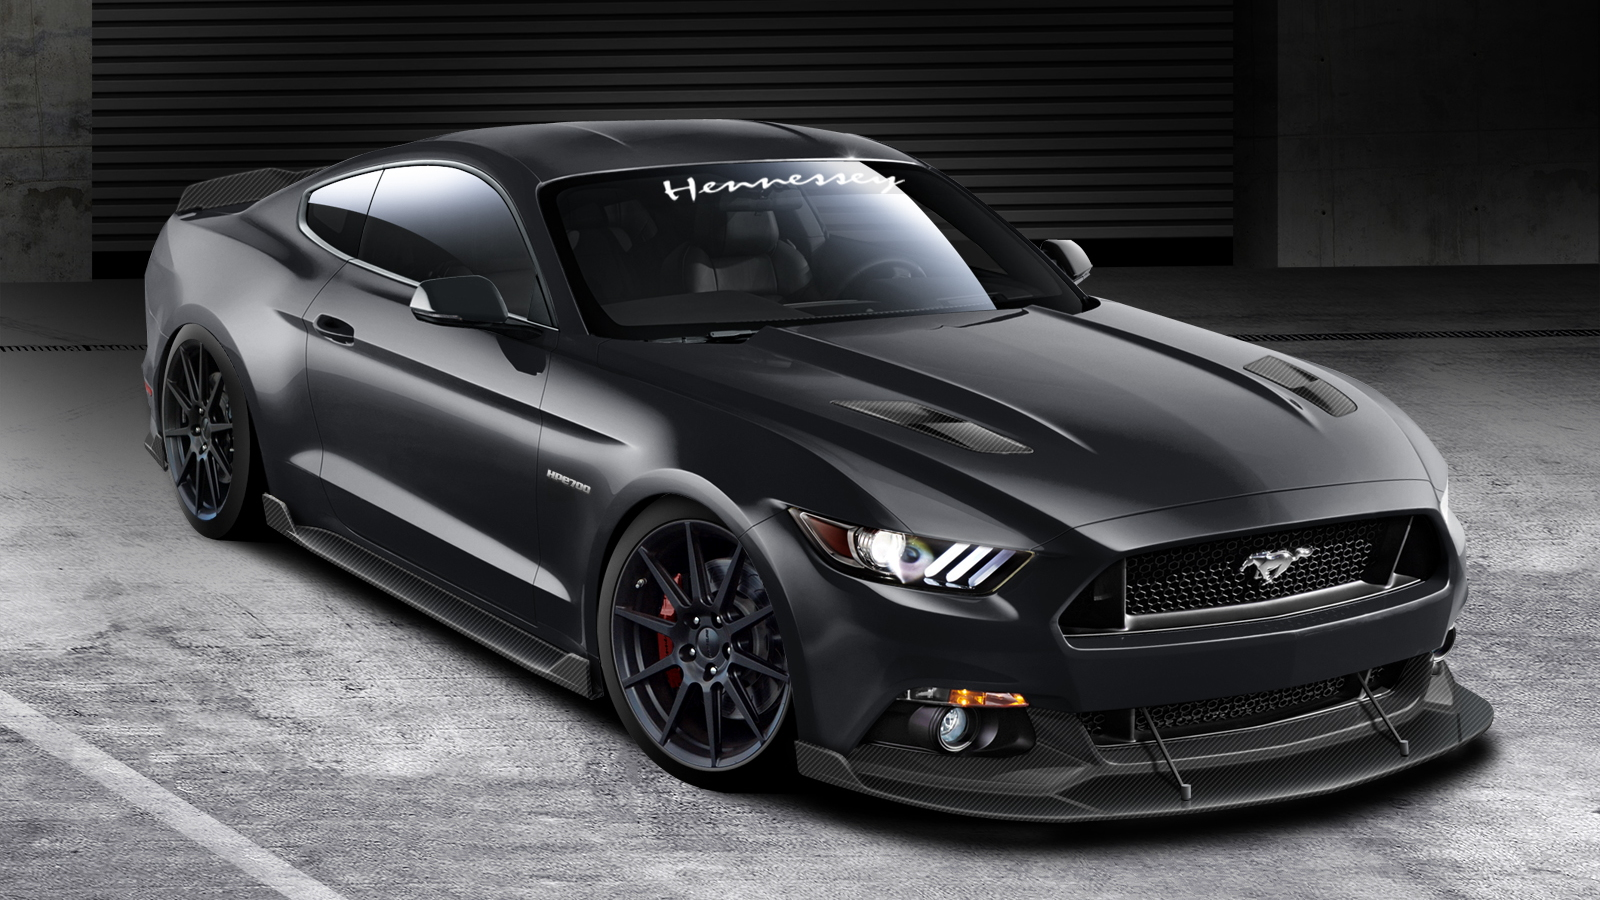 2015 Ford Mustang Hennessey HPE700